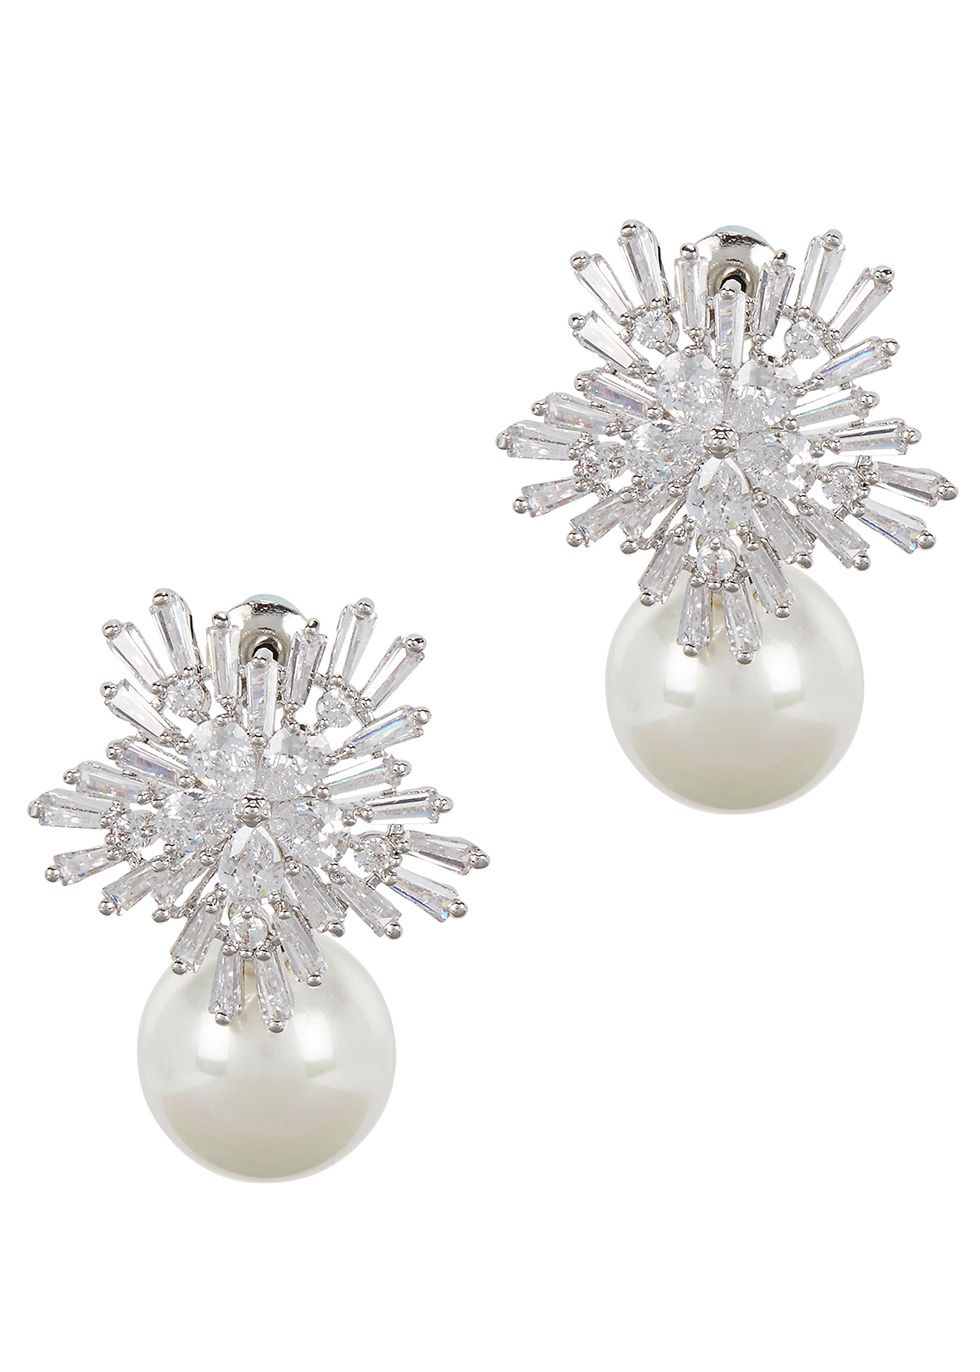 Uk Exclusive To Harvey Nichols Fallon Rhodium Plated Drop Earrings Cubic Zirconia Embellished Face